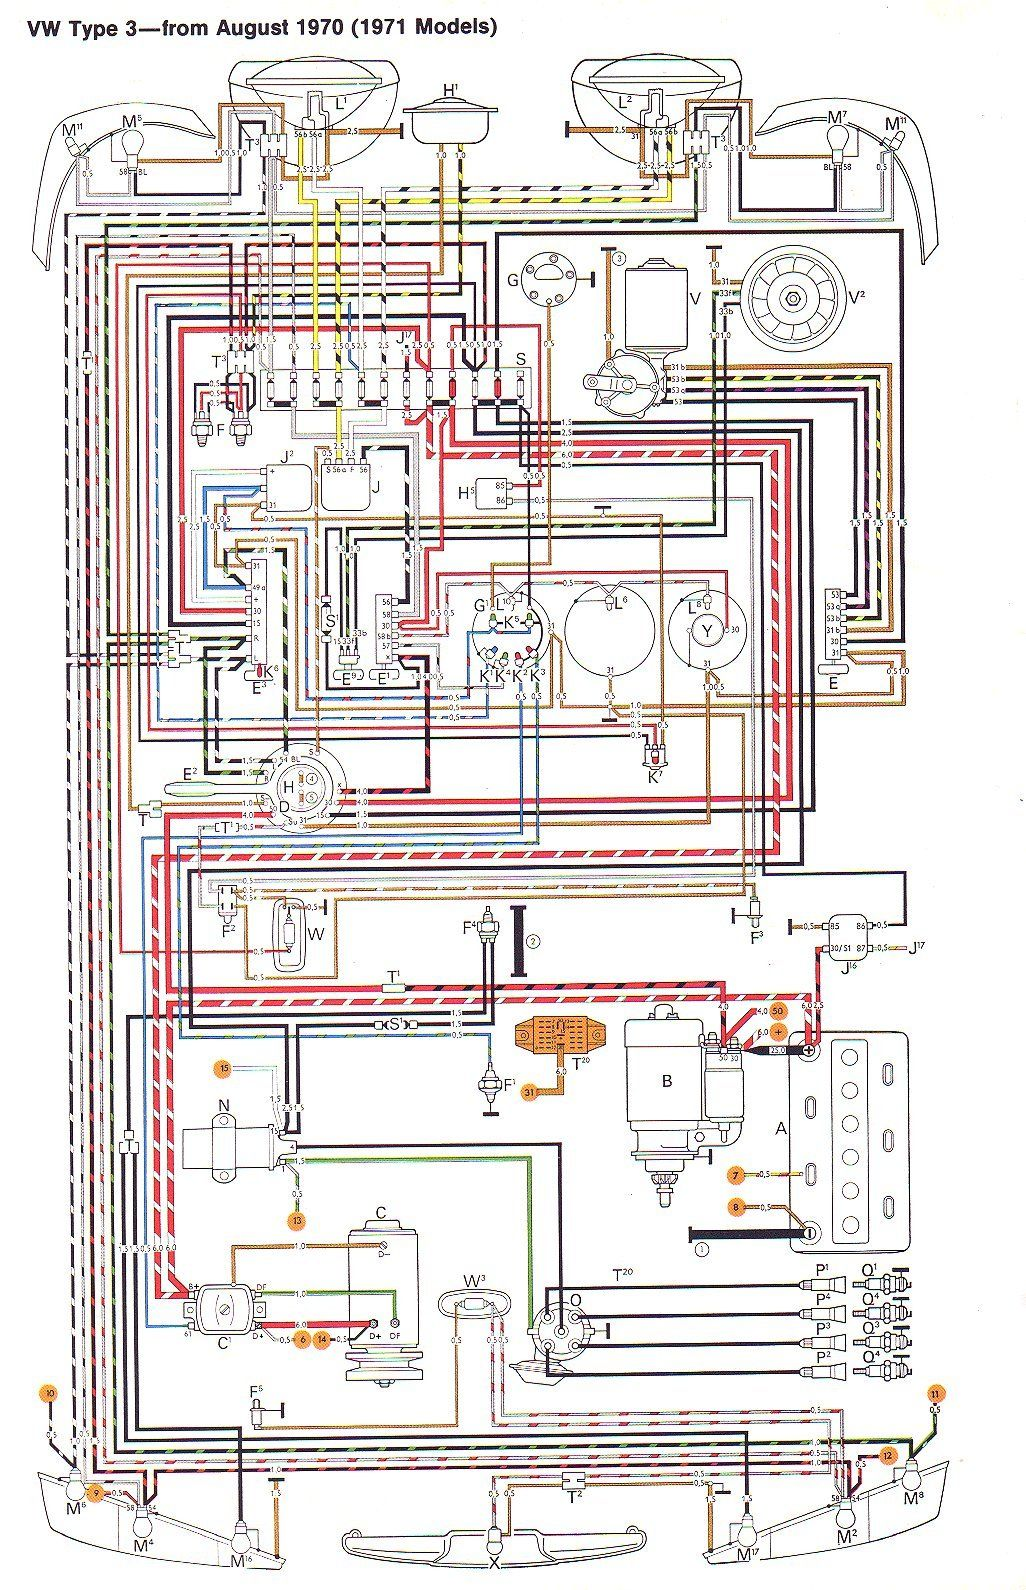 e0db58370f79a63d02d45f00cf63f44a 71 vw t3 wiring diagram car projects pinterest volkswagen 1971 vw bus wiring diagram at gsmportal.co